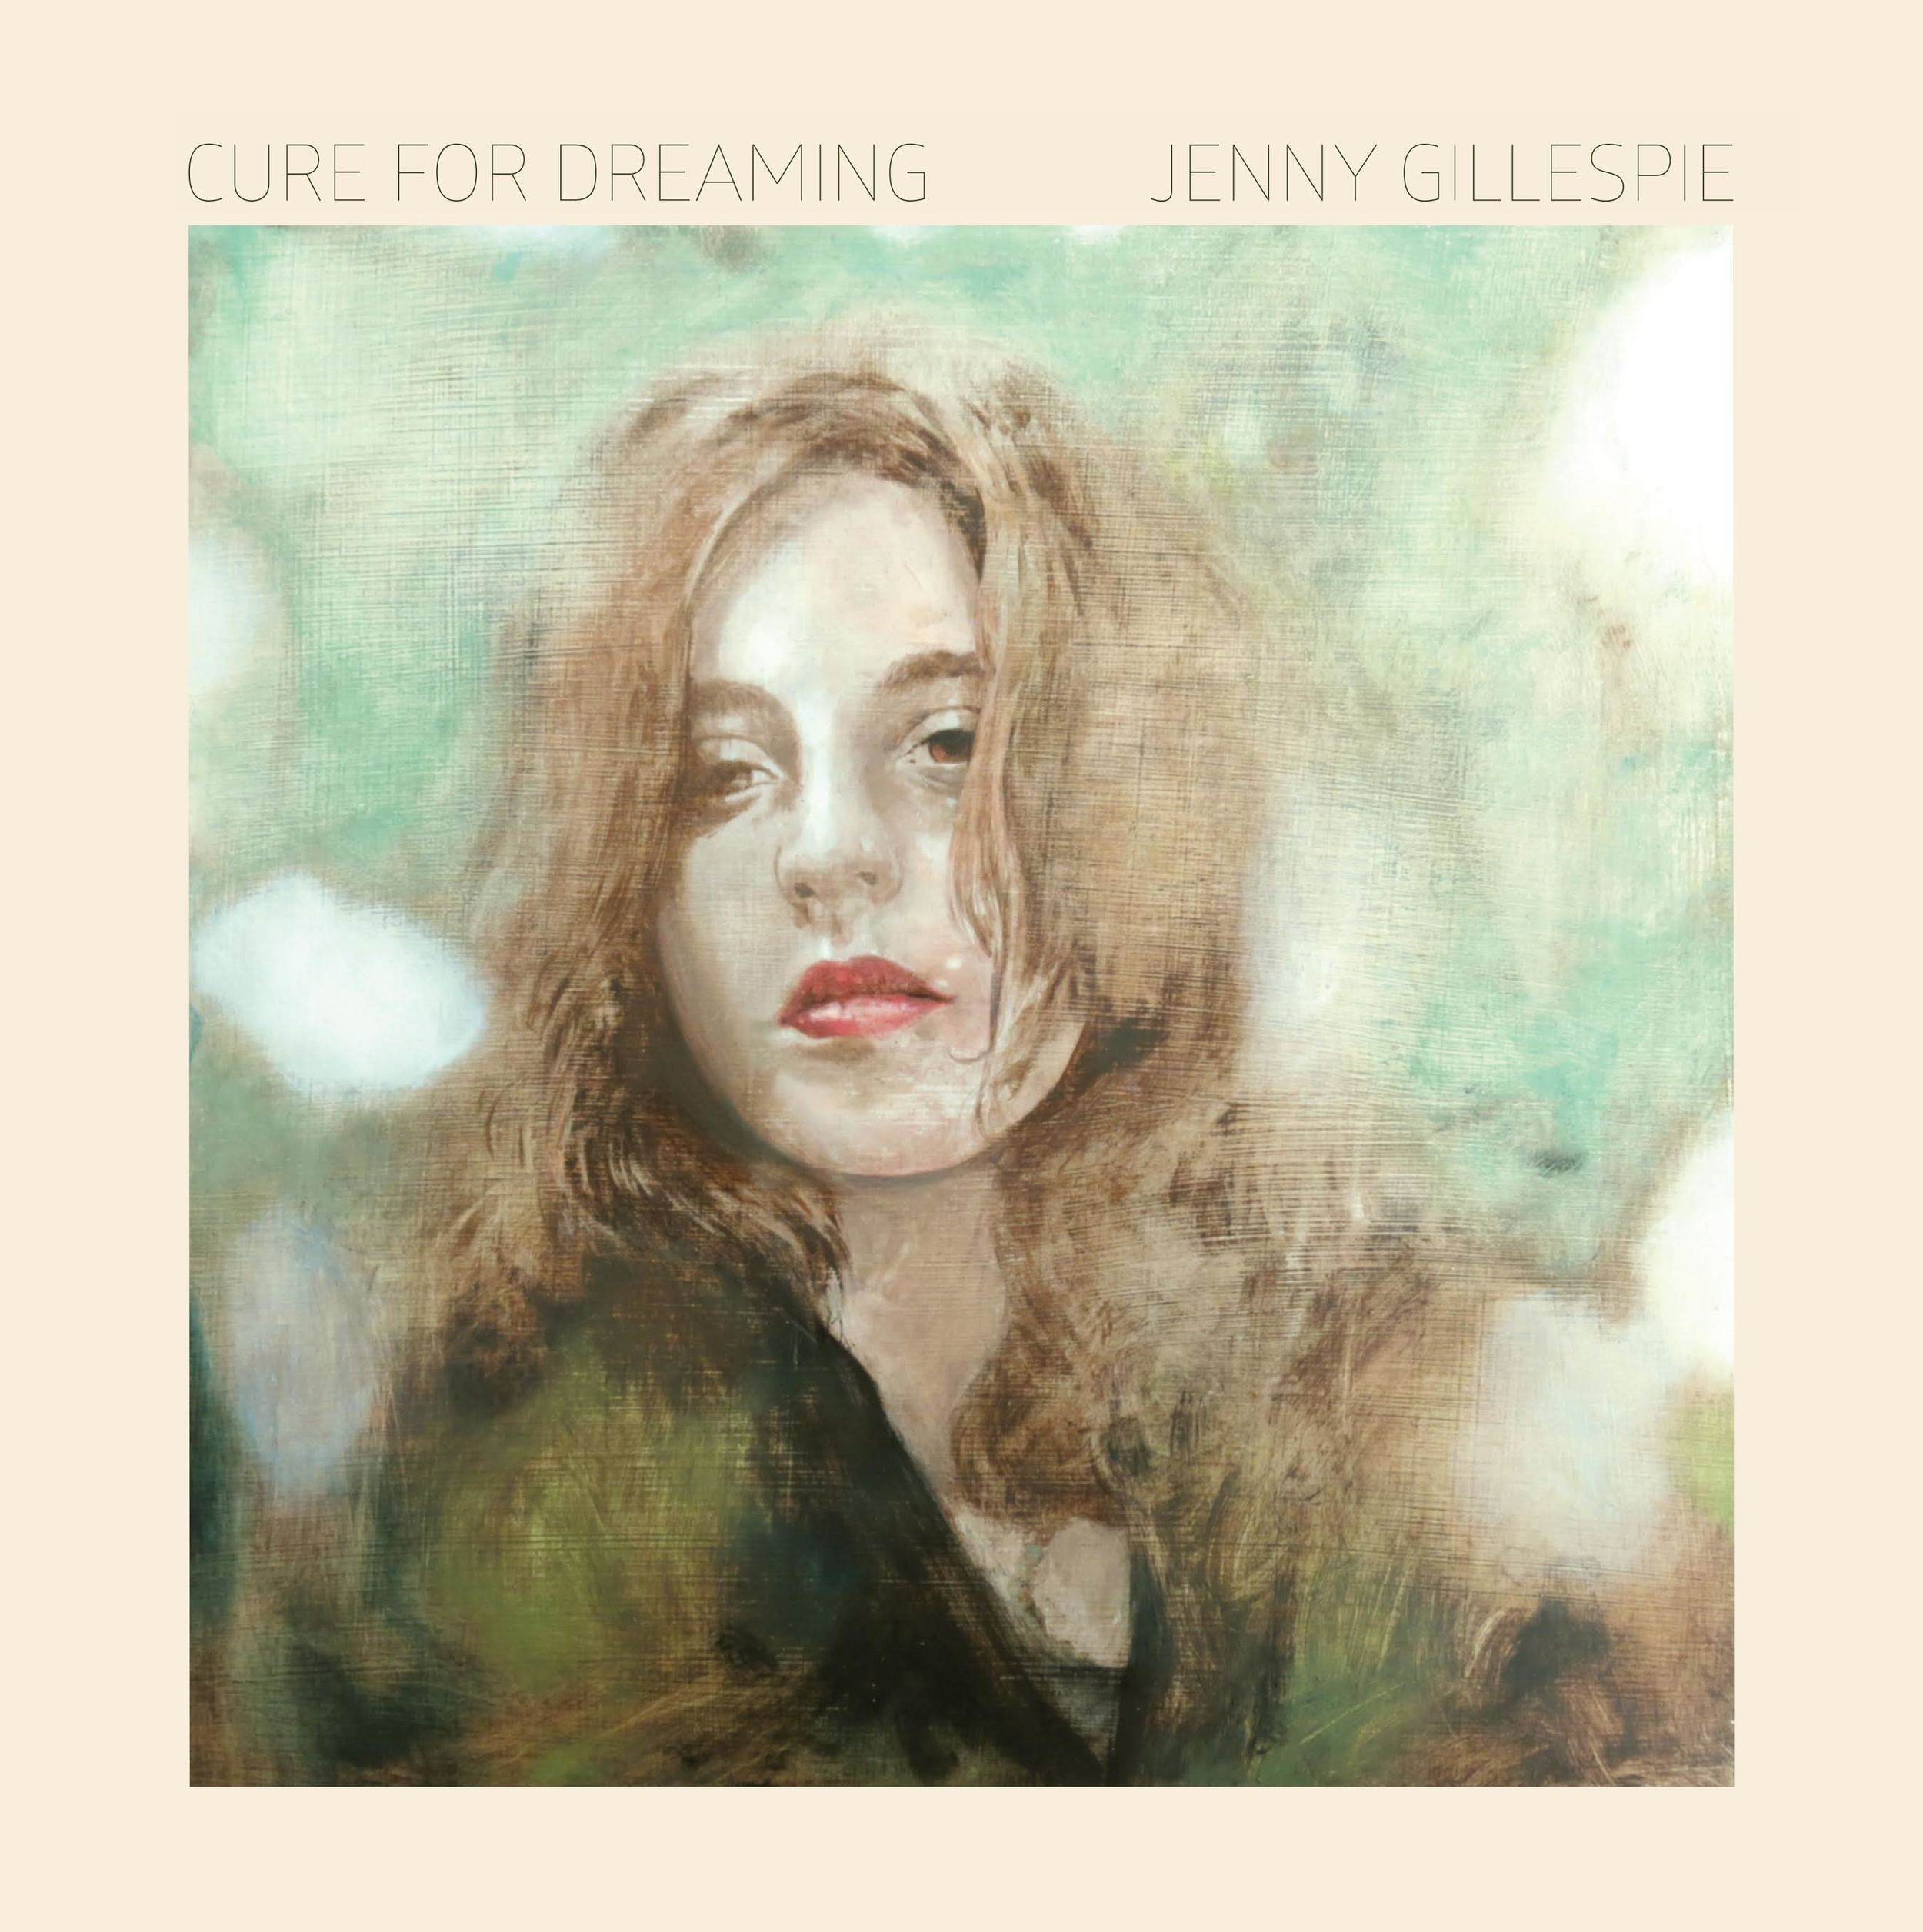 jenny gillespie - cure for dreaming